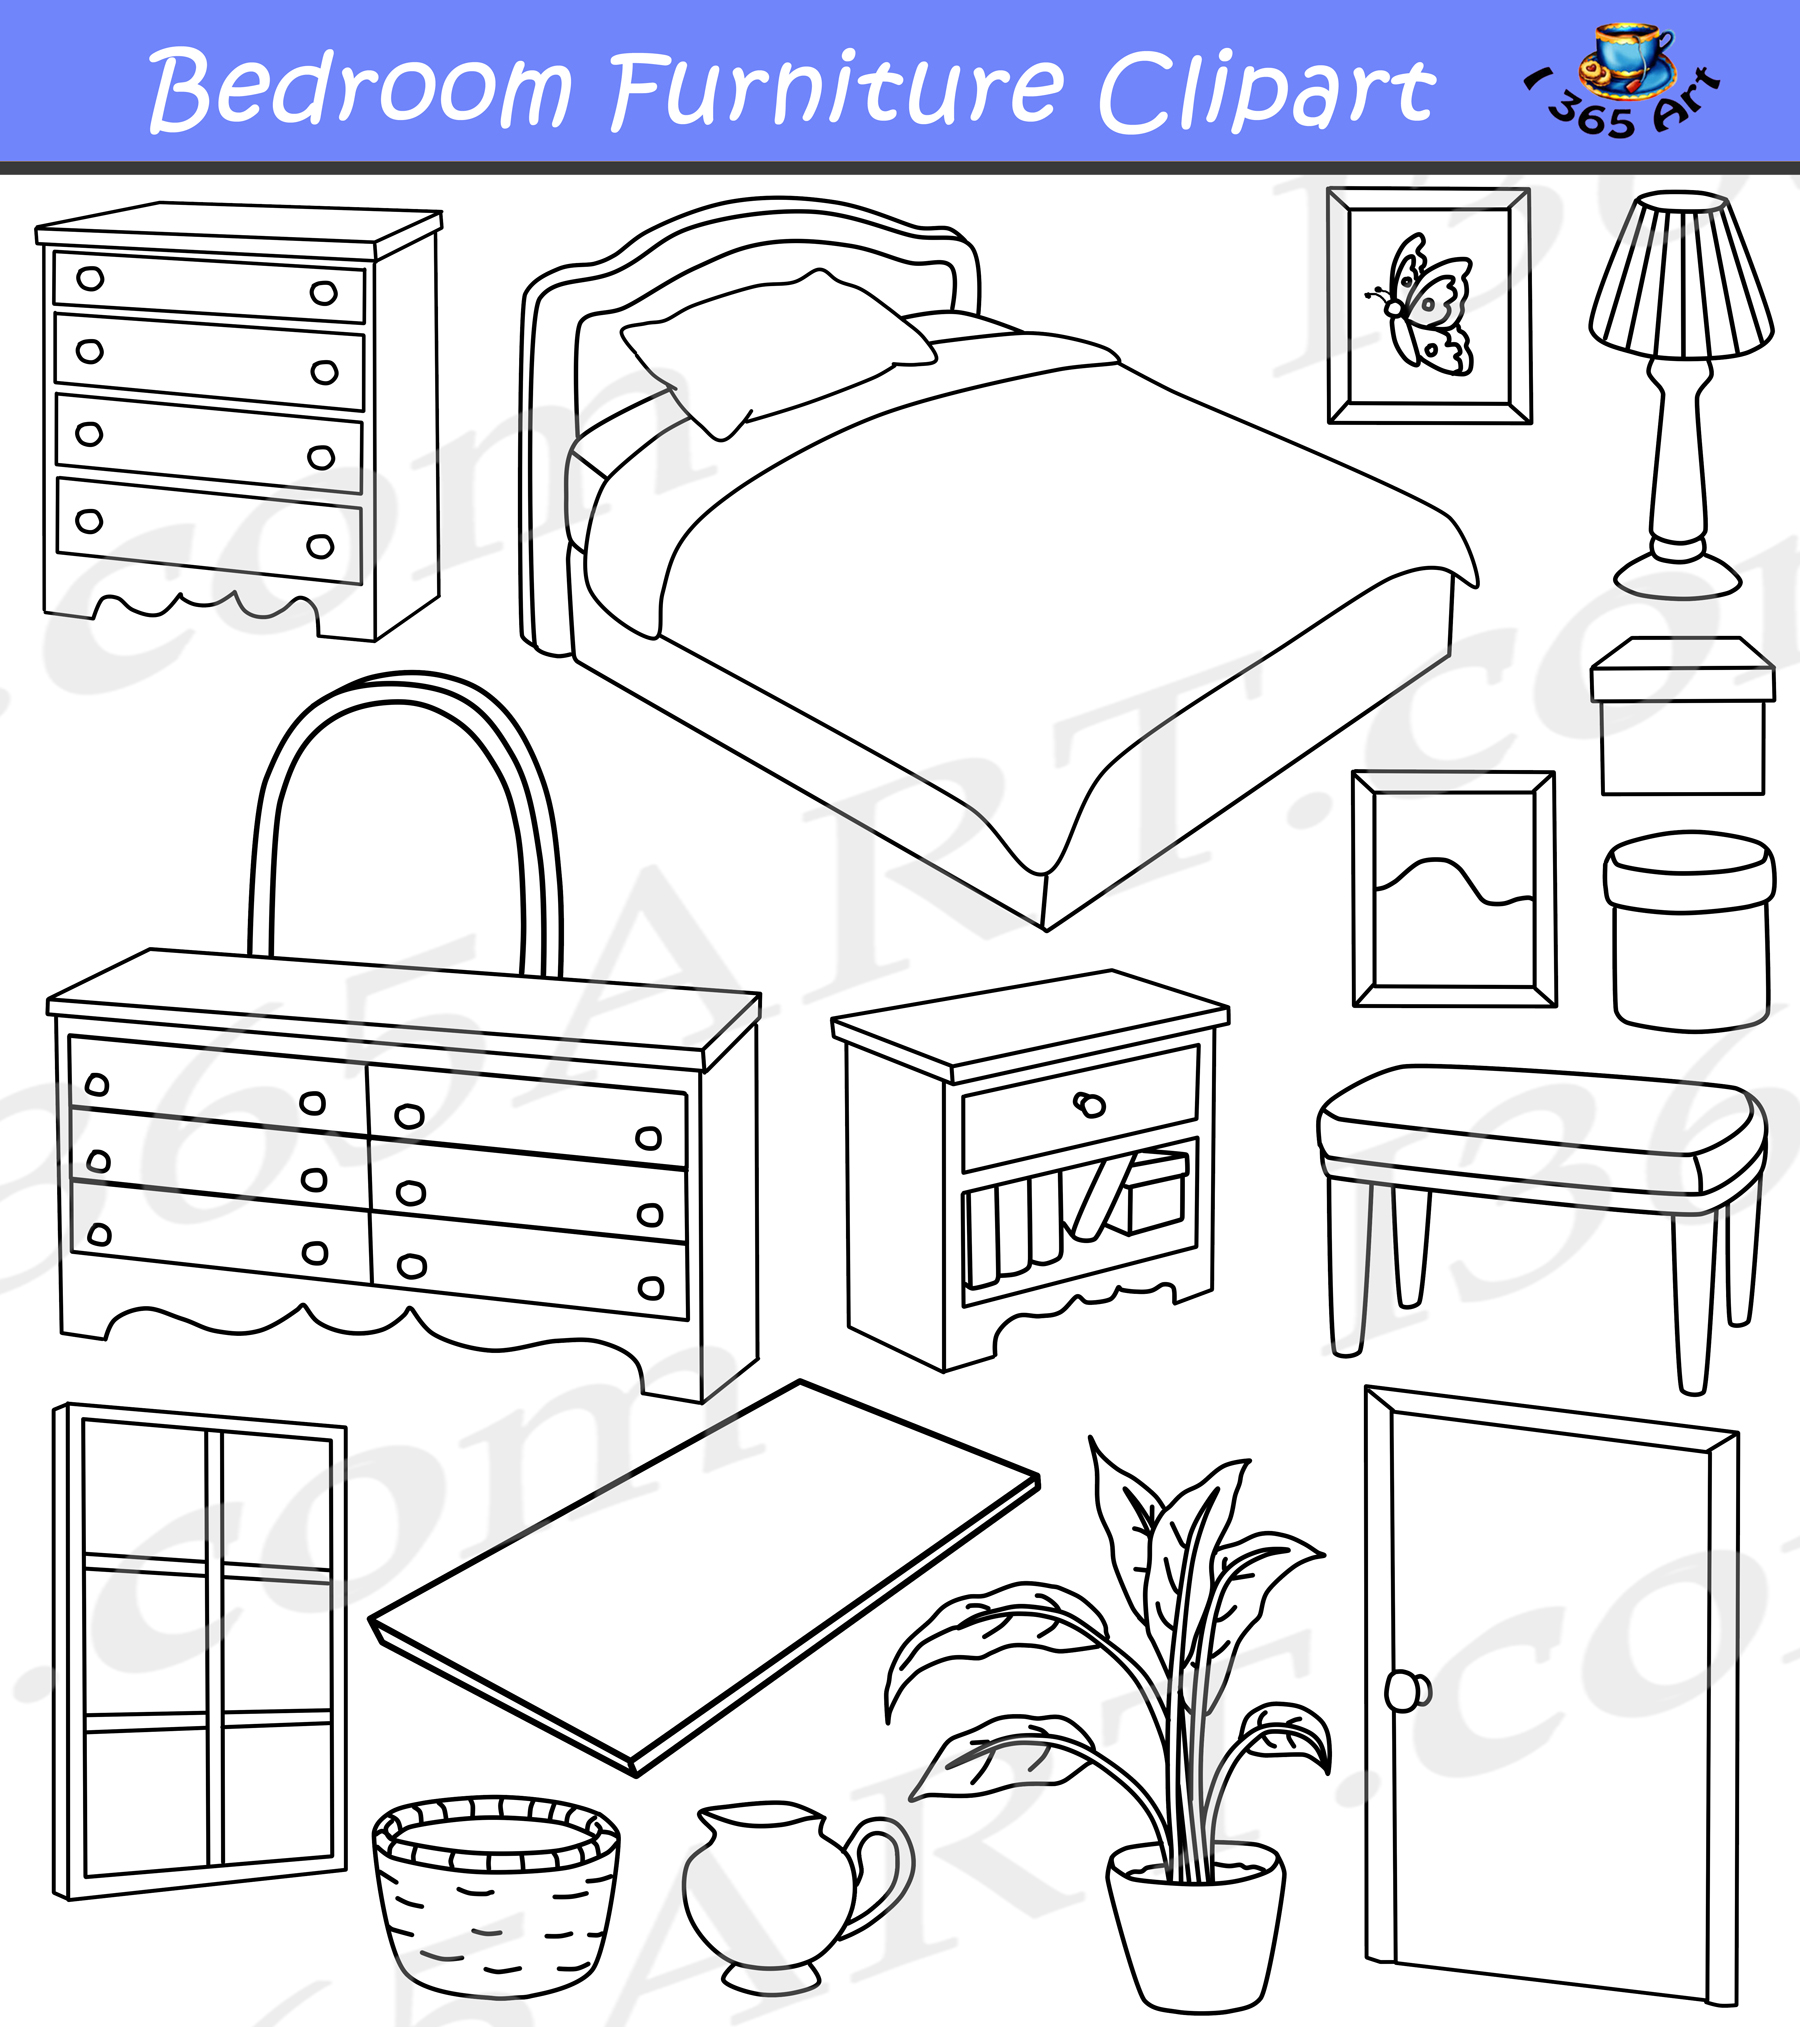 Bedroom home graphics commercial. Furniture clipart black and white